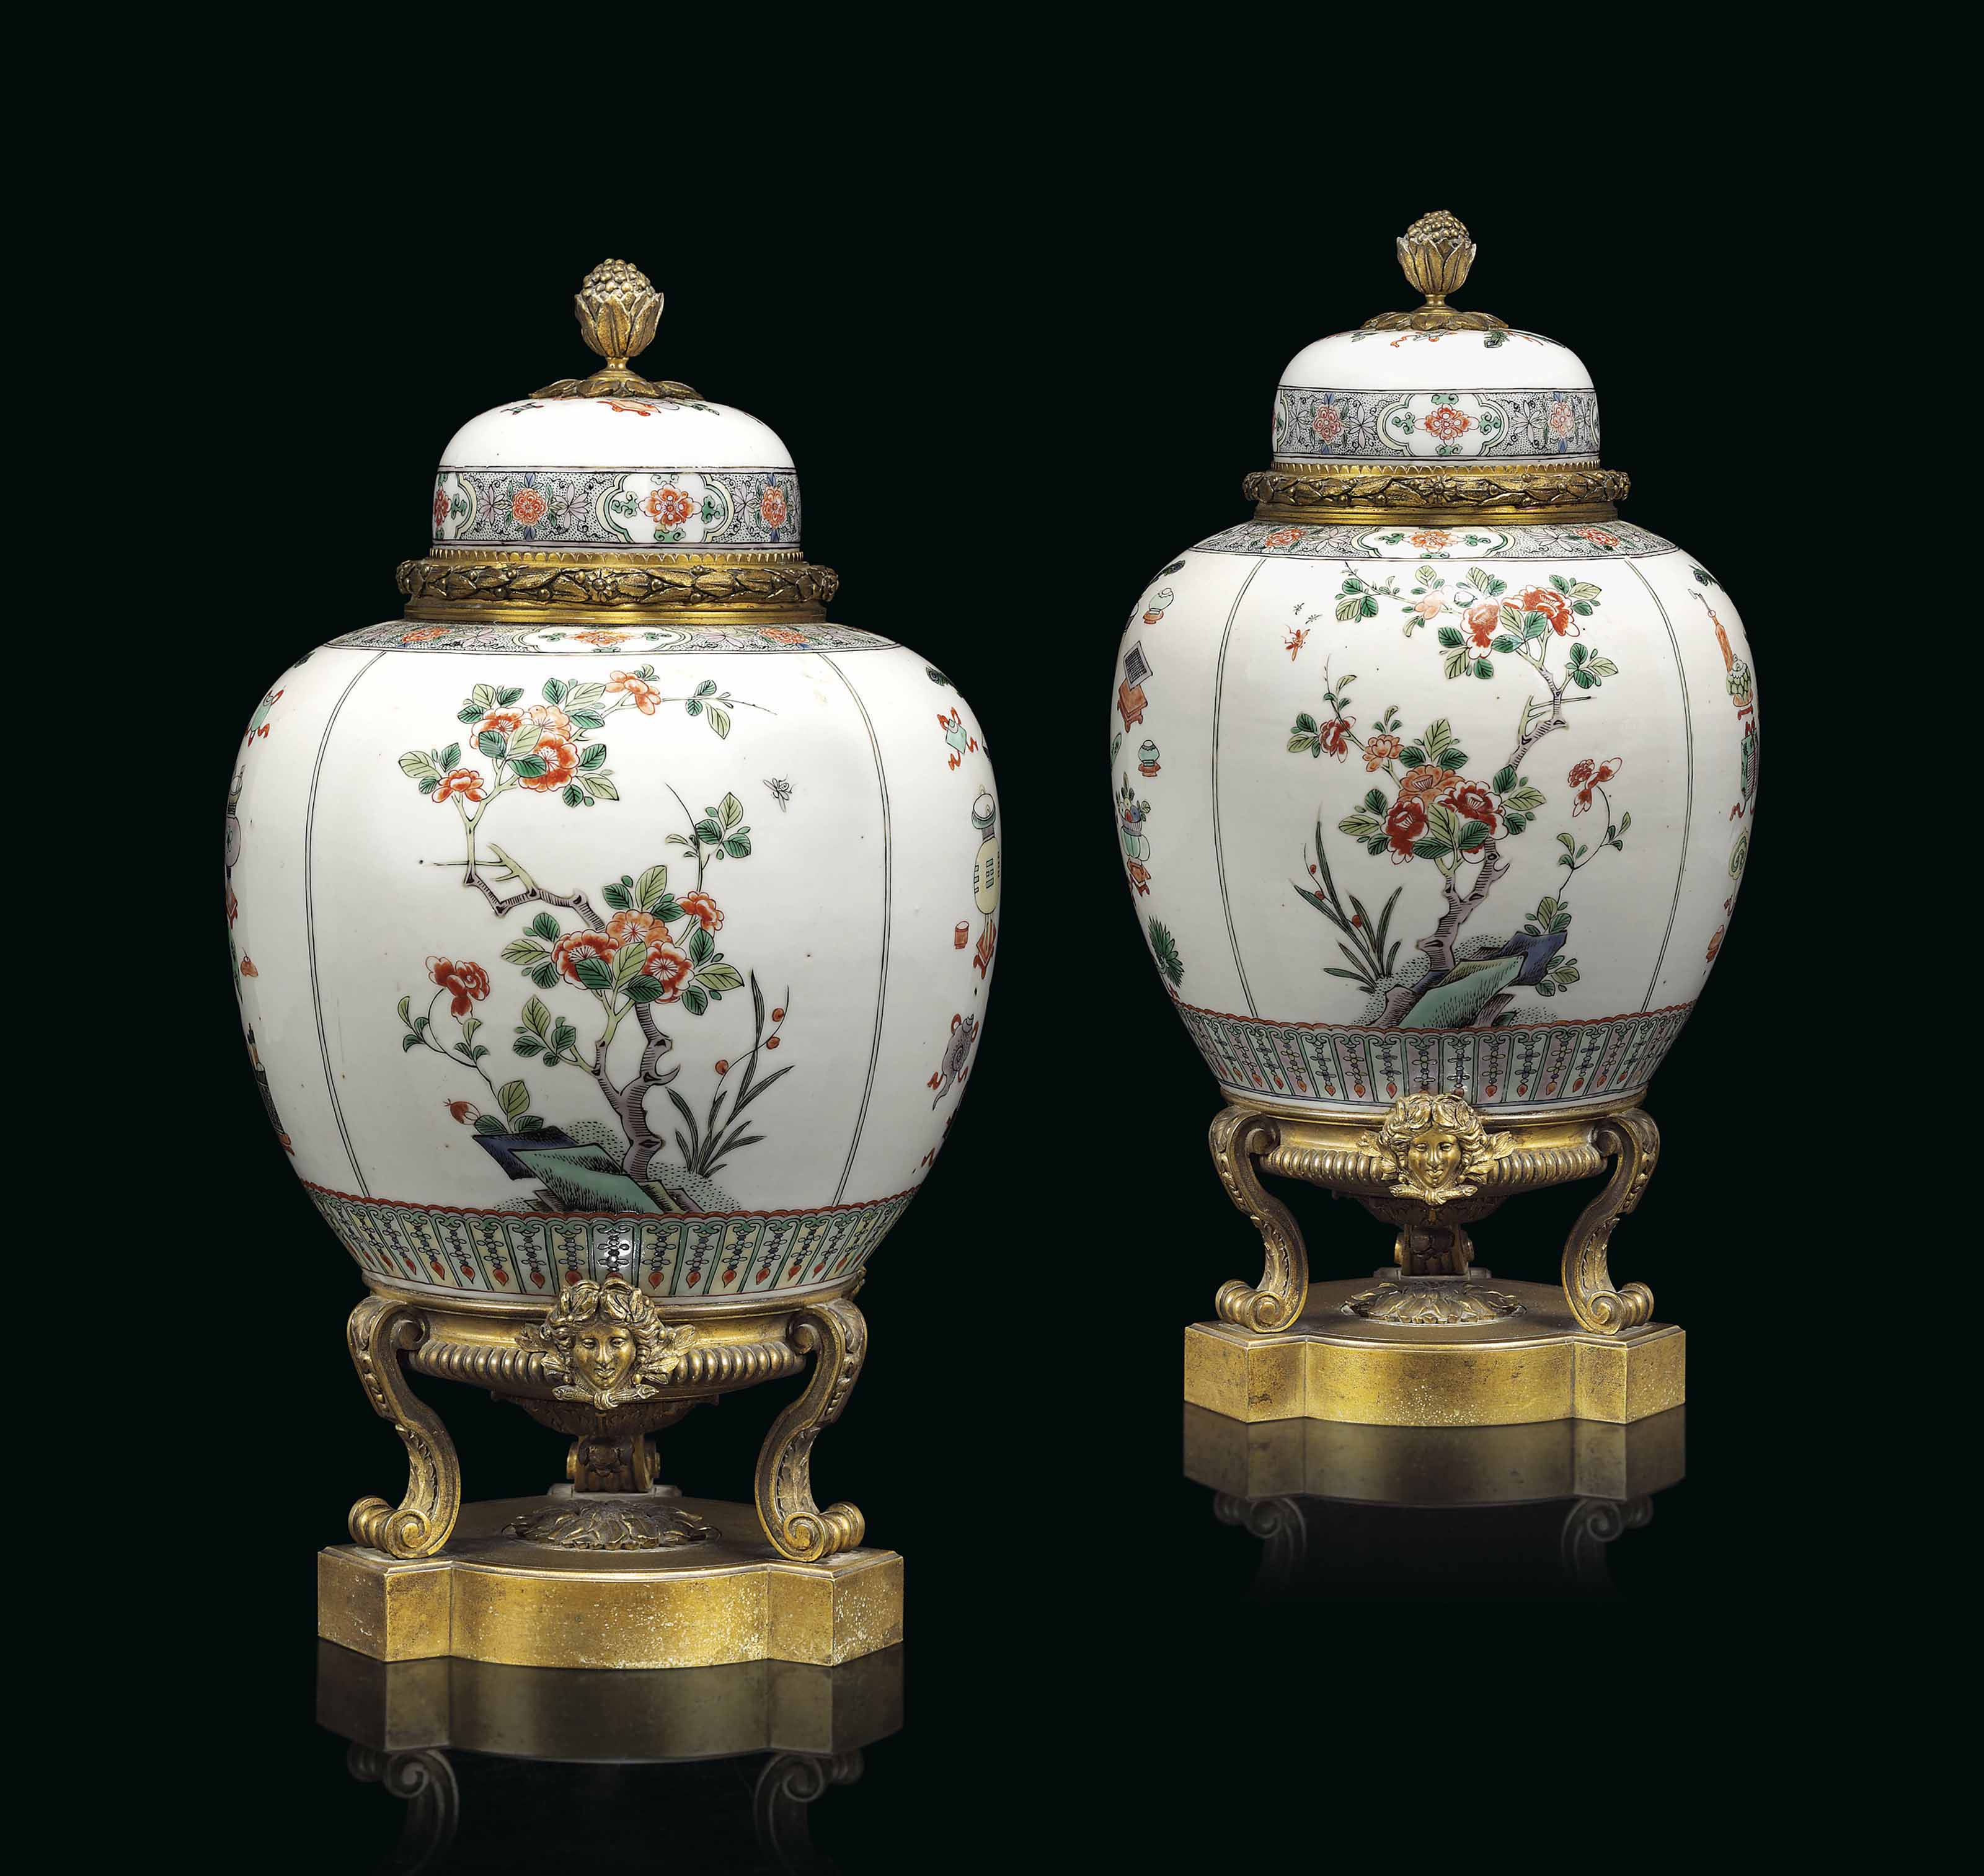 A PAIR OF FRENCH ORMOLU-MOUNTED PORCELAIN VASES AND COVERS